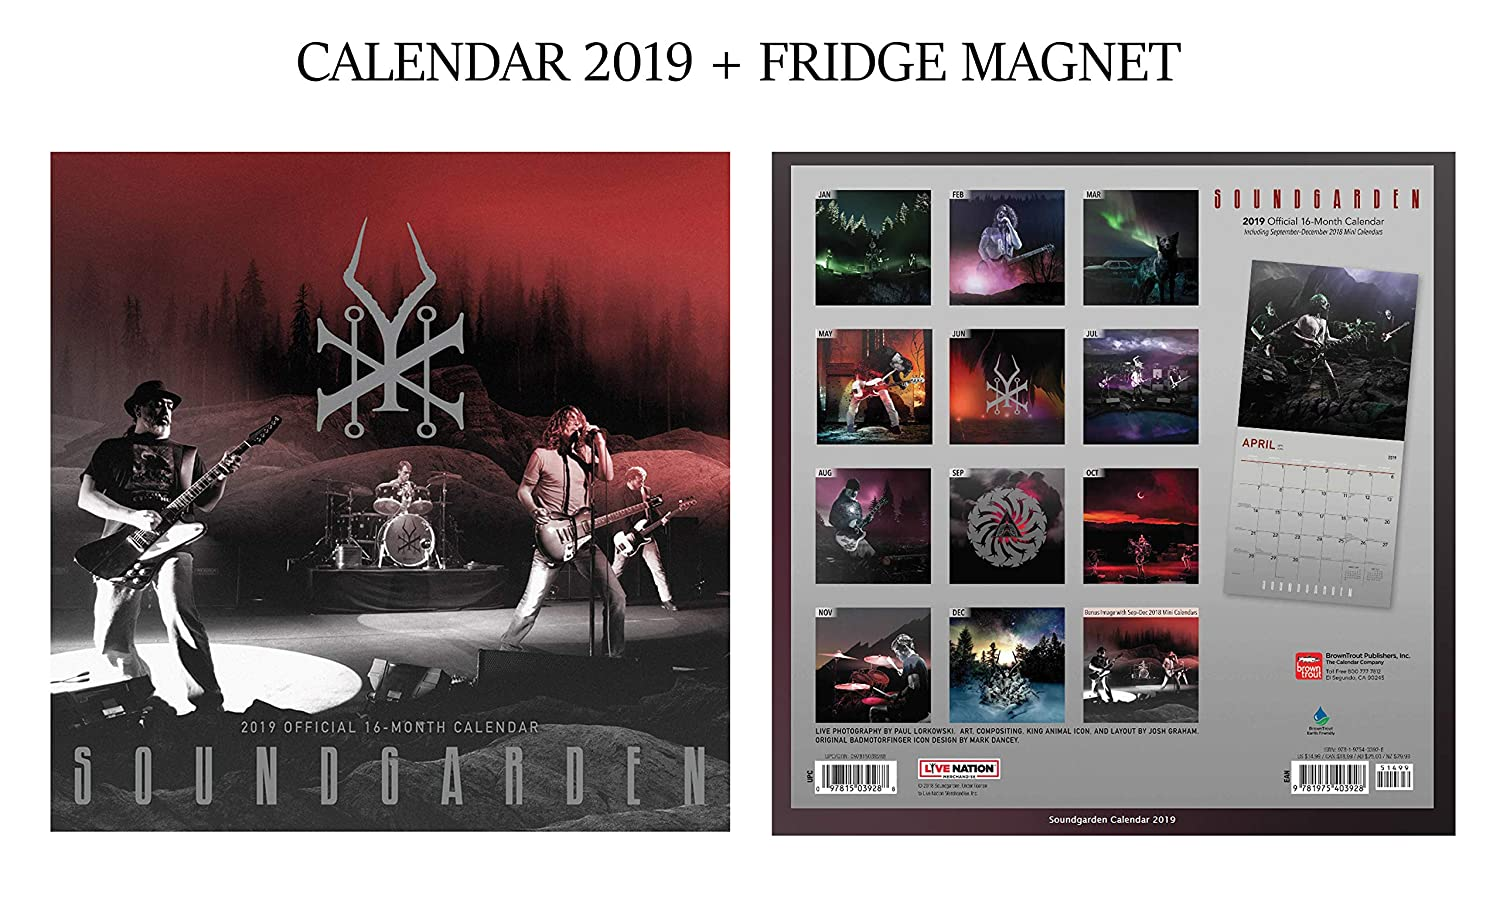 Soundgarden Official Calendar 2019 + Soundgarden Fridge Magnet GIFTSCITY